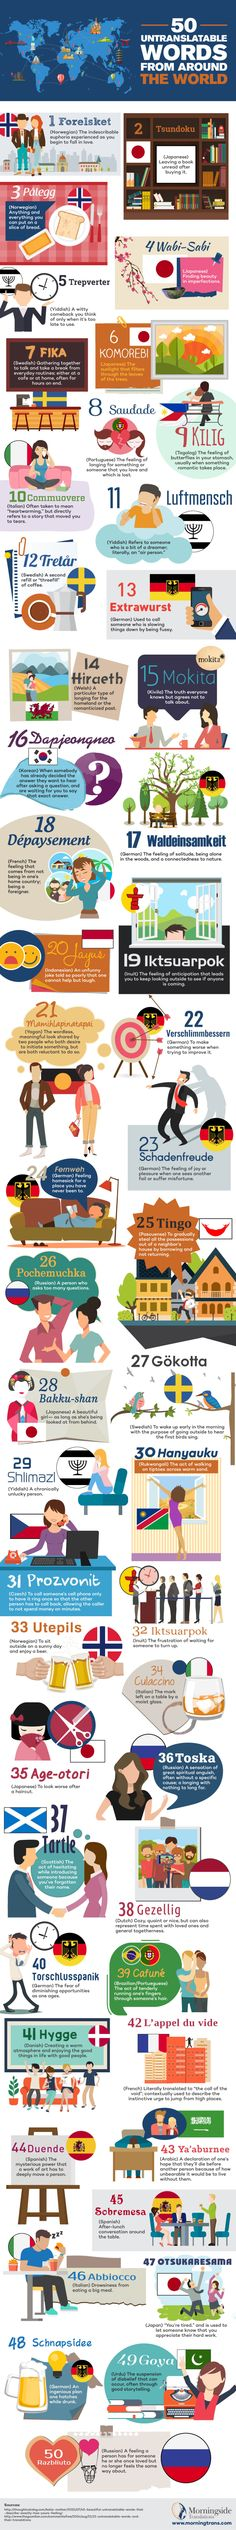 50 Untranslatable Words from Around the World #Infographic #Infografía